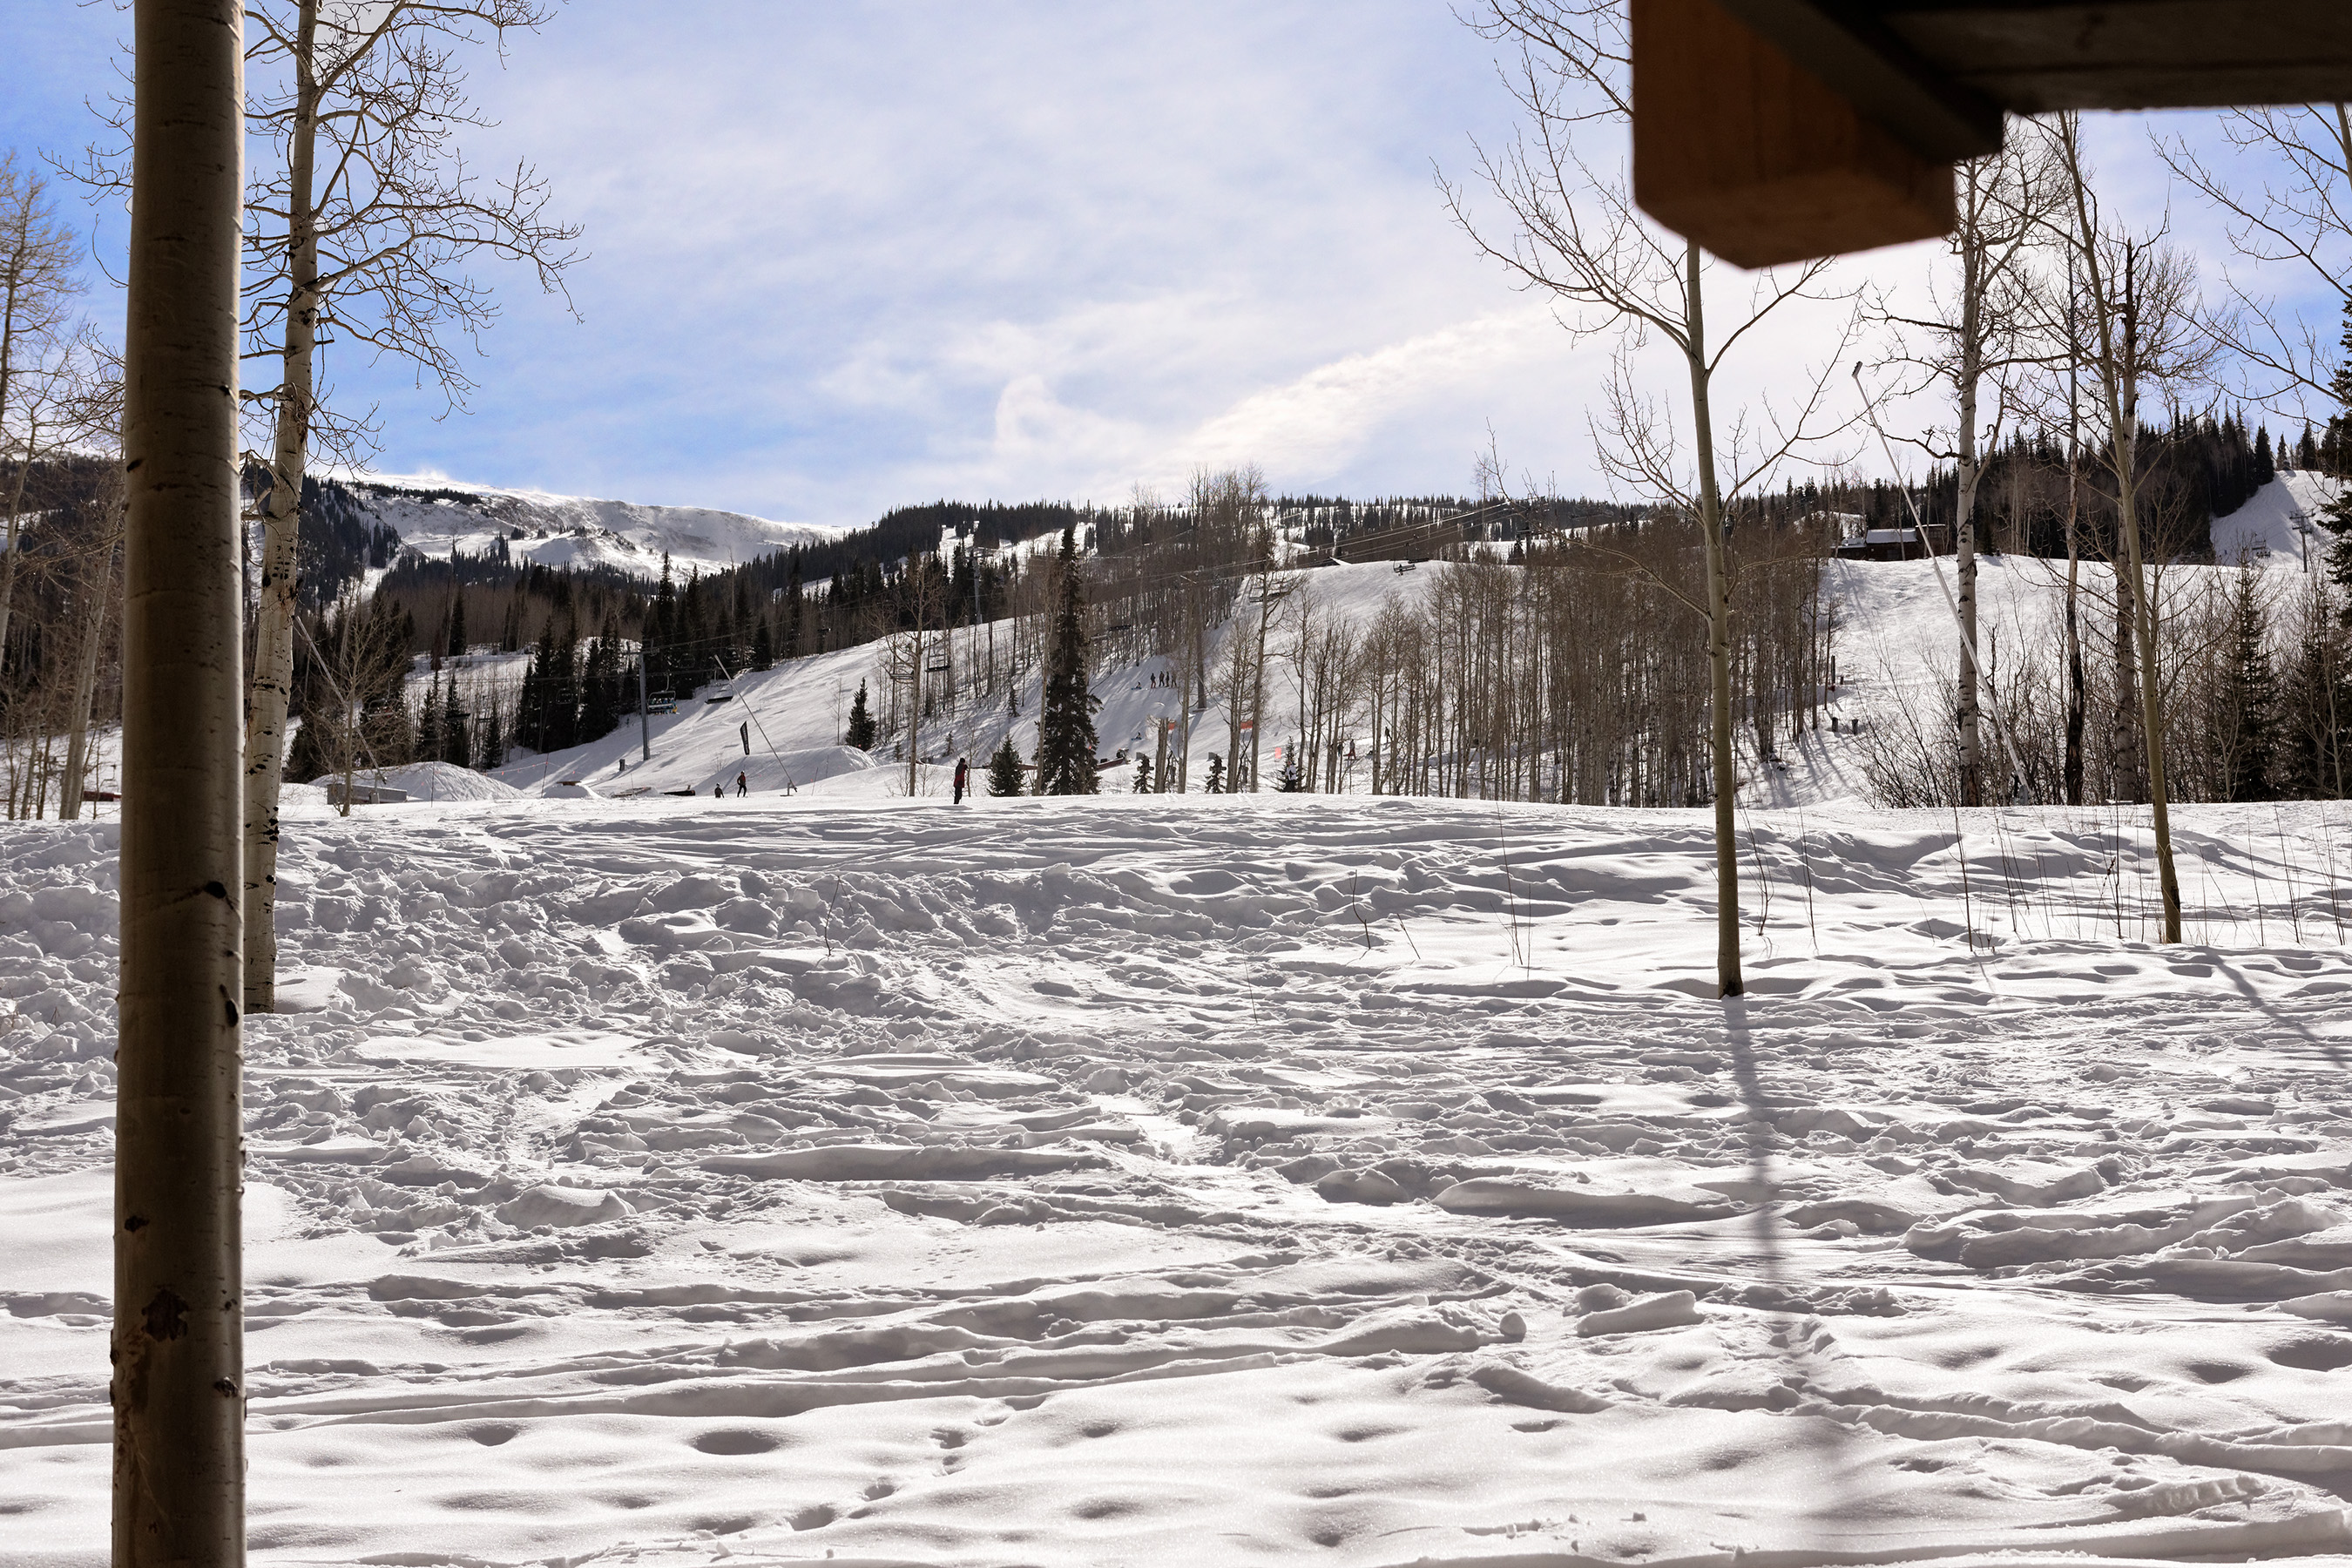 855 Carriage Way Slope 207 Snowmass Village Photo